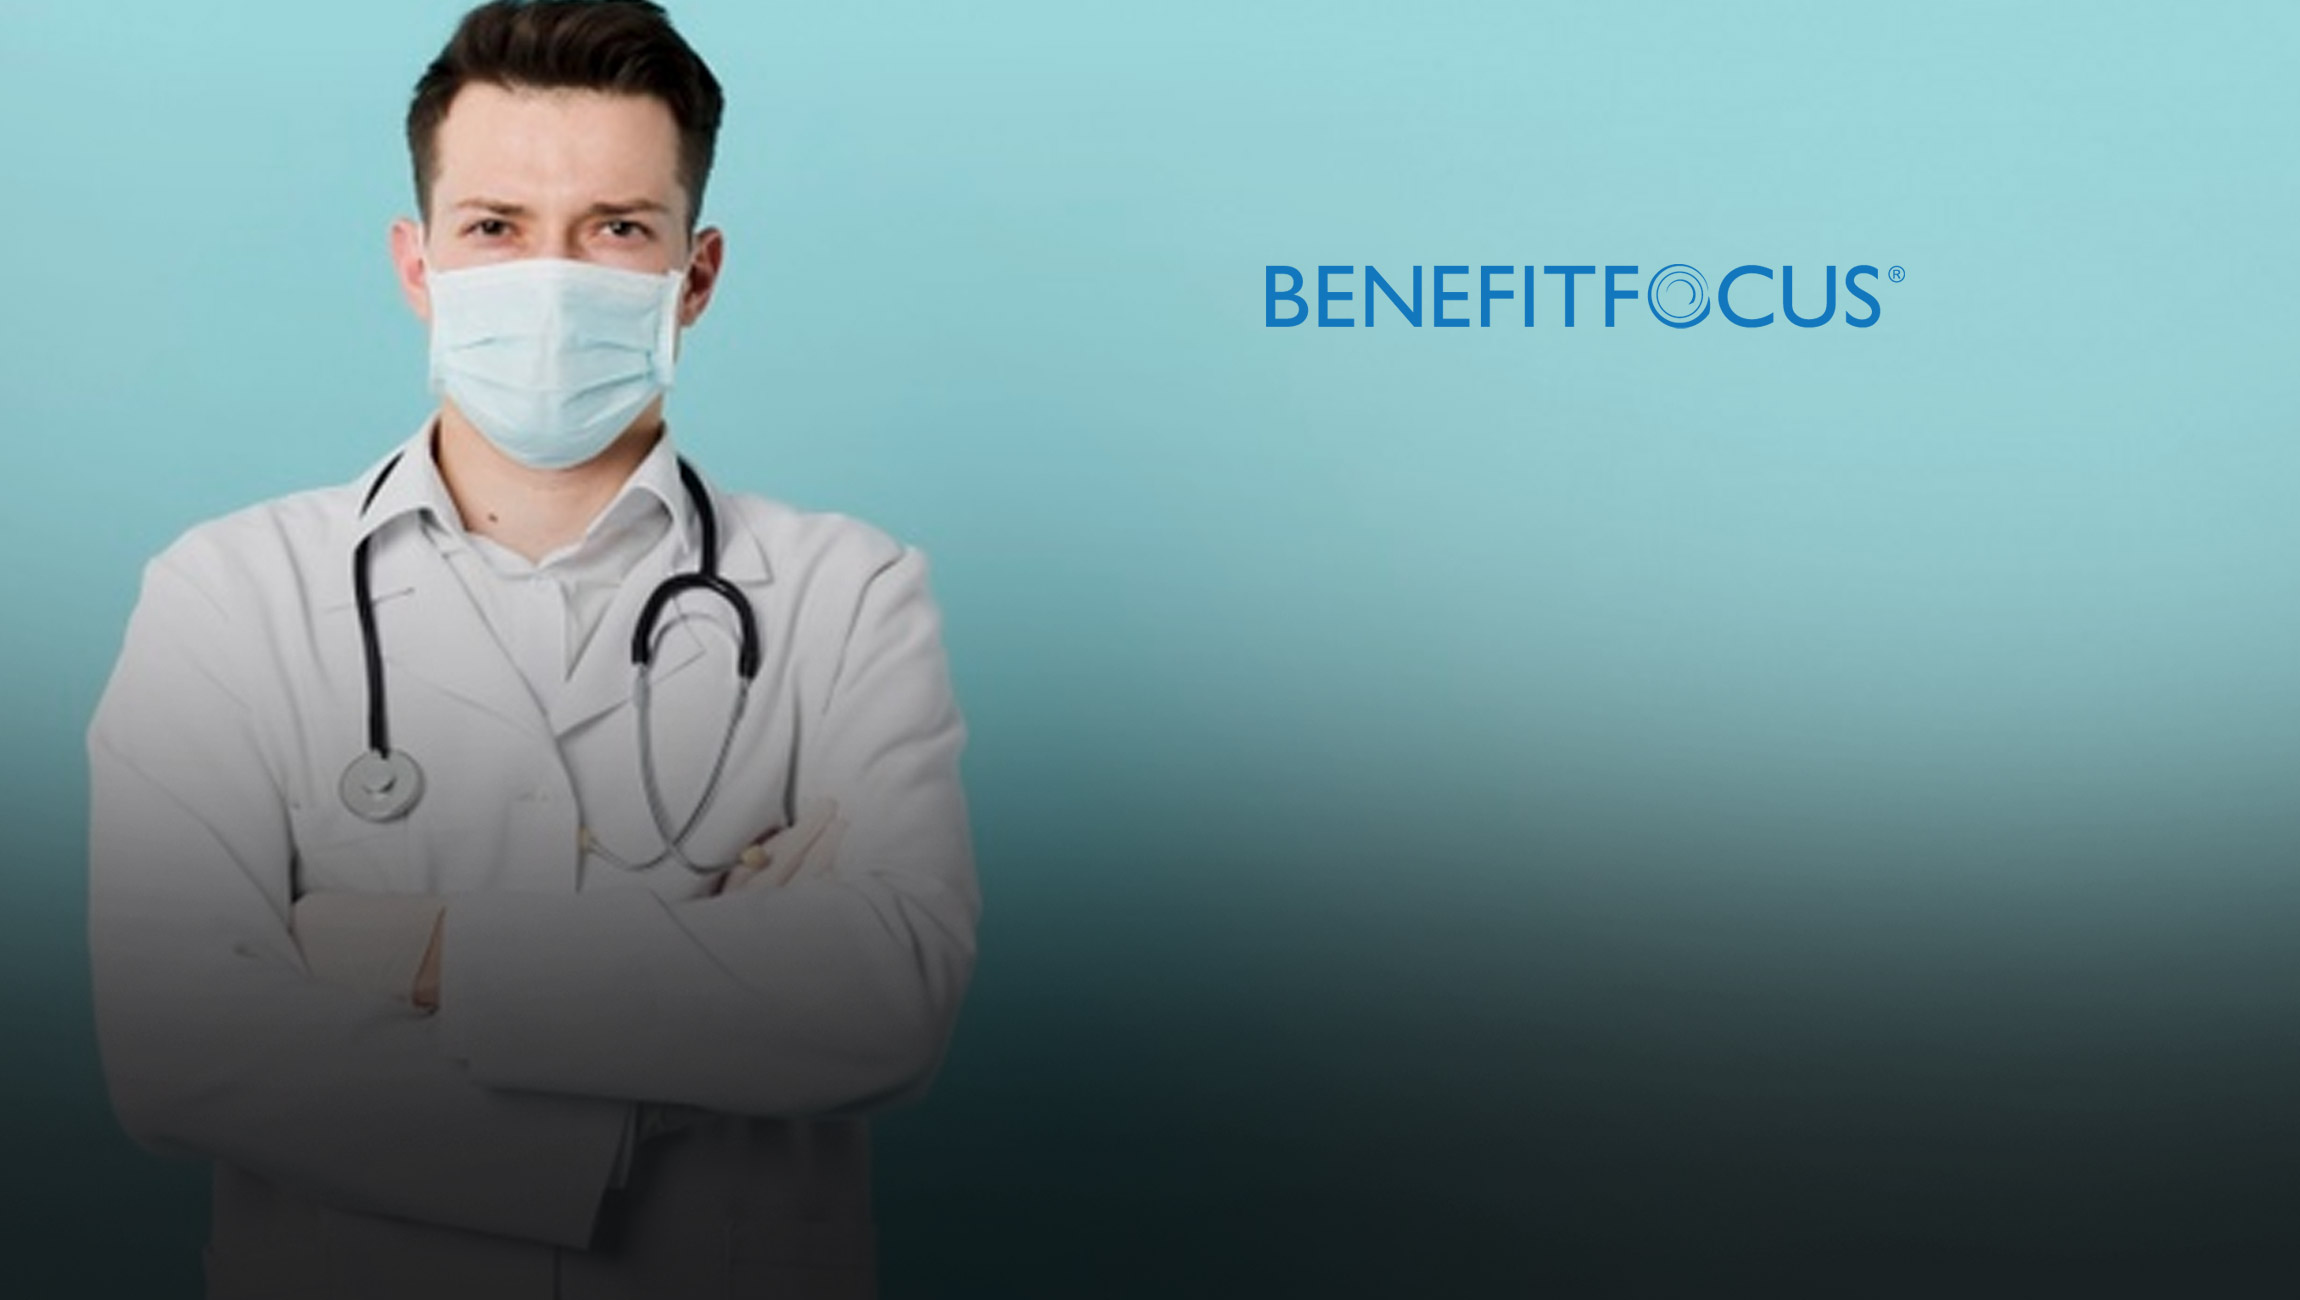 Benefitfocus Launches Benefitplace.com Providing Lower Cost Health & Benefit Options for Displaced American Workers